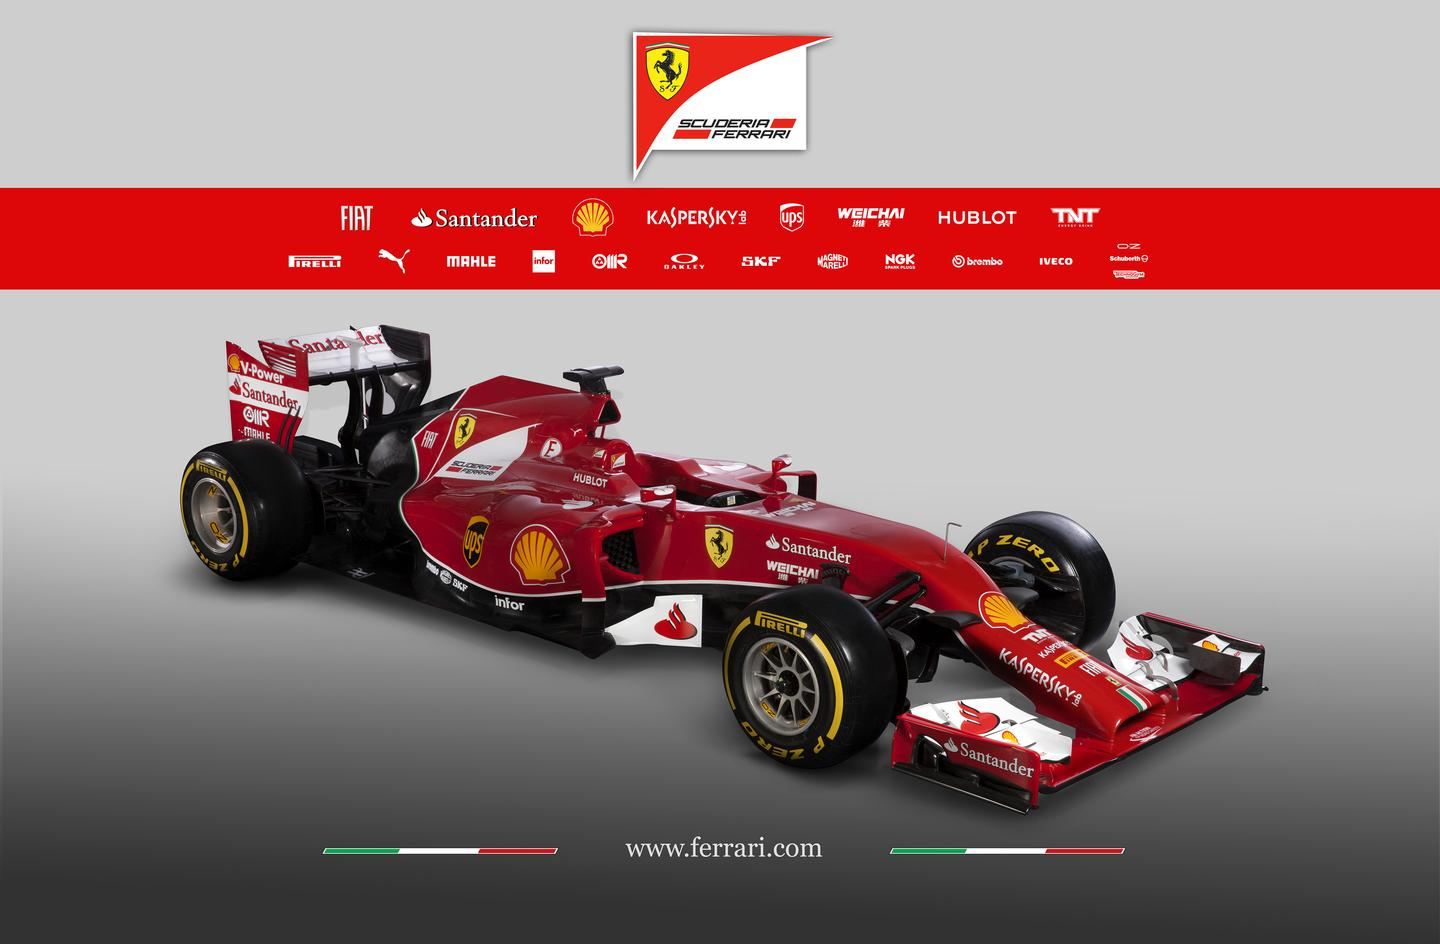 Ferrari's F14-T took two years of intensive research and engineering to design and meet F1's new regulations